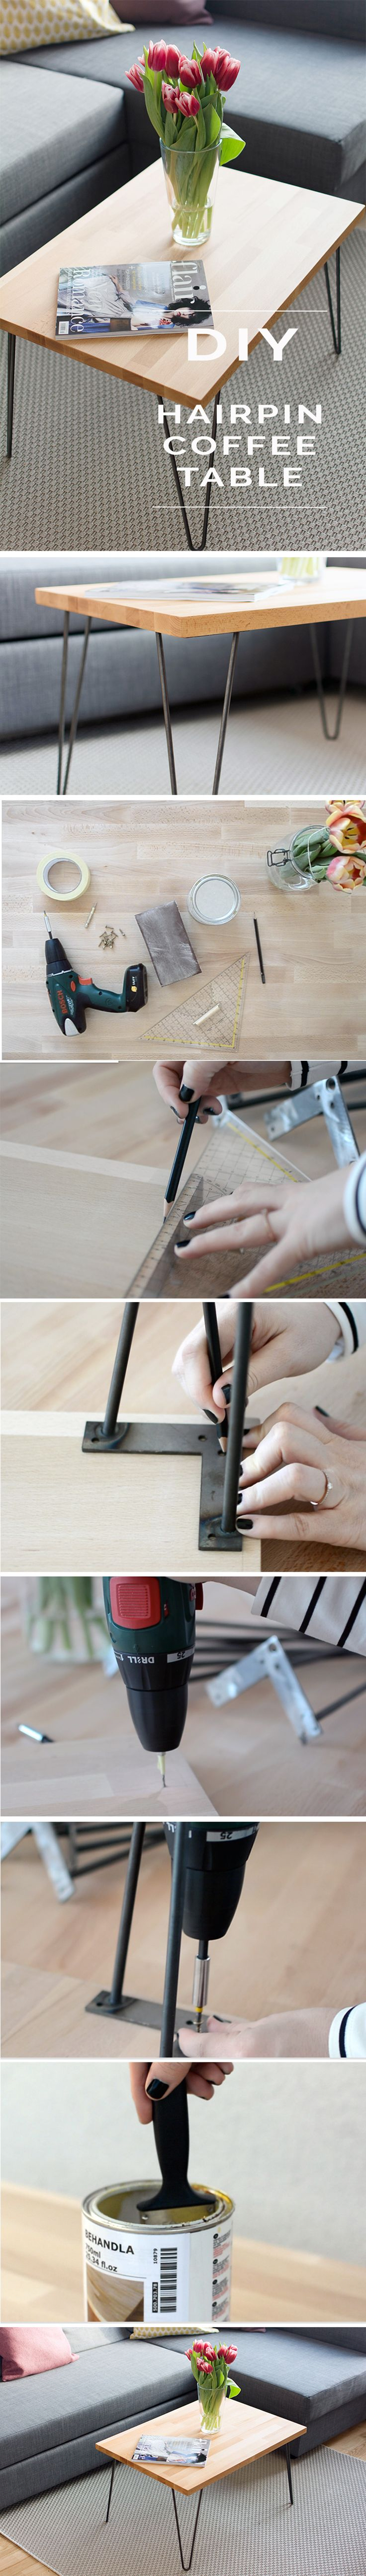 DIY ^ coffee table ^ hairpin legs ^ interior ^ living room ^ steel legs